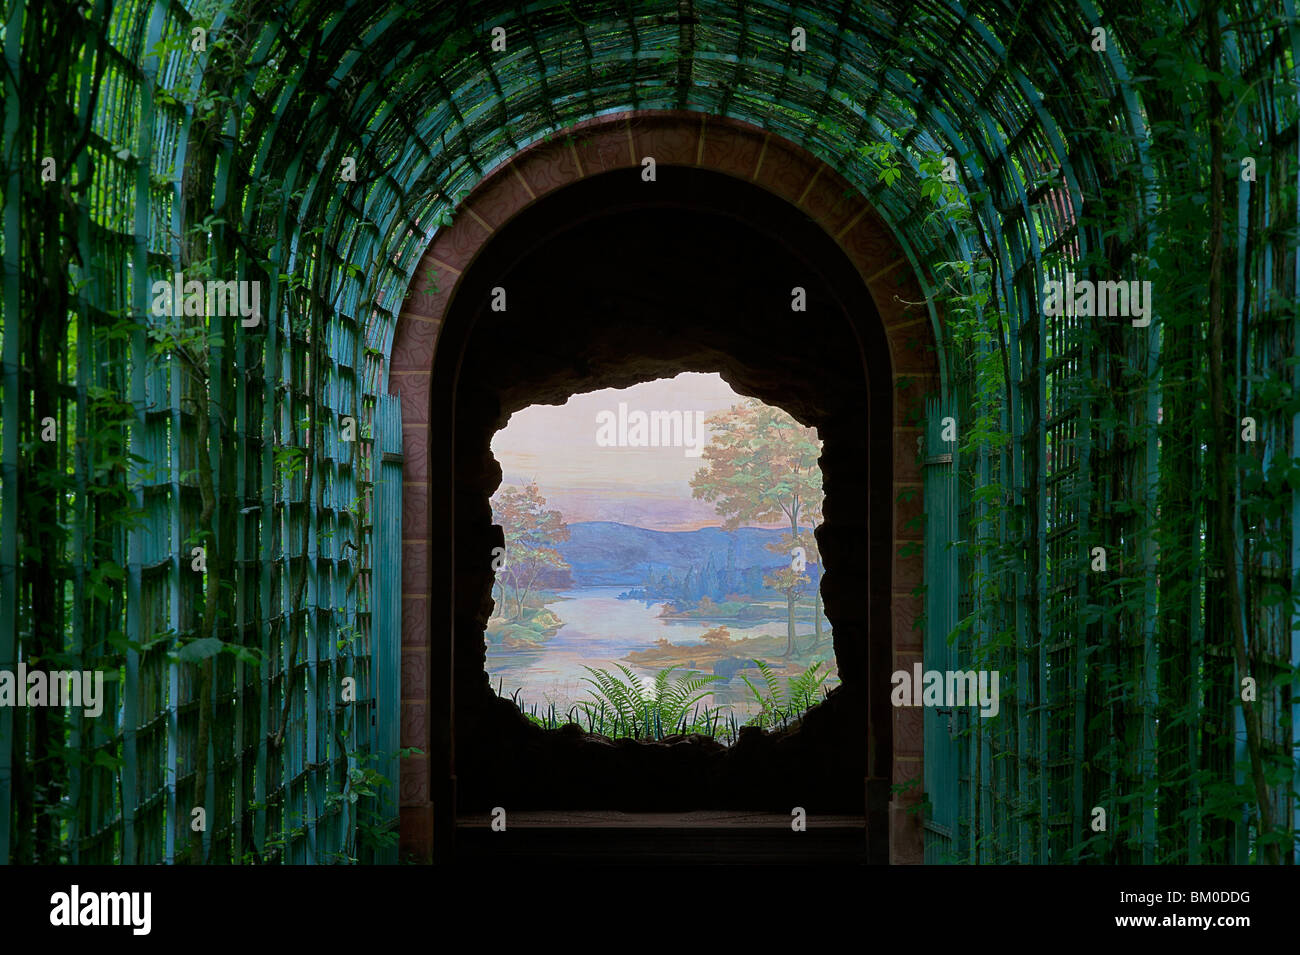 Perspective in the palace gardens of Schwetzingen Castle, Baden-Wuerttemberg, Germany, Europe - Stock Image